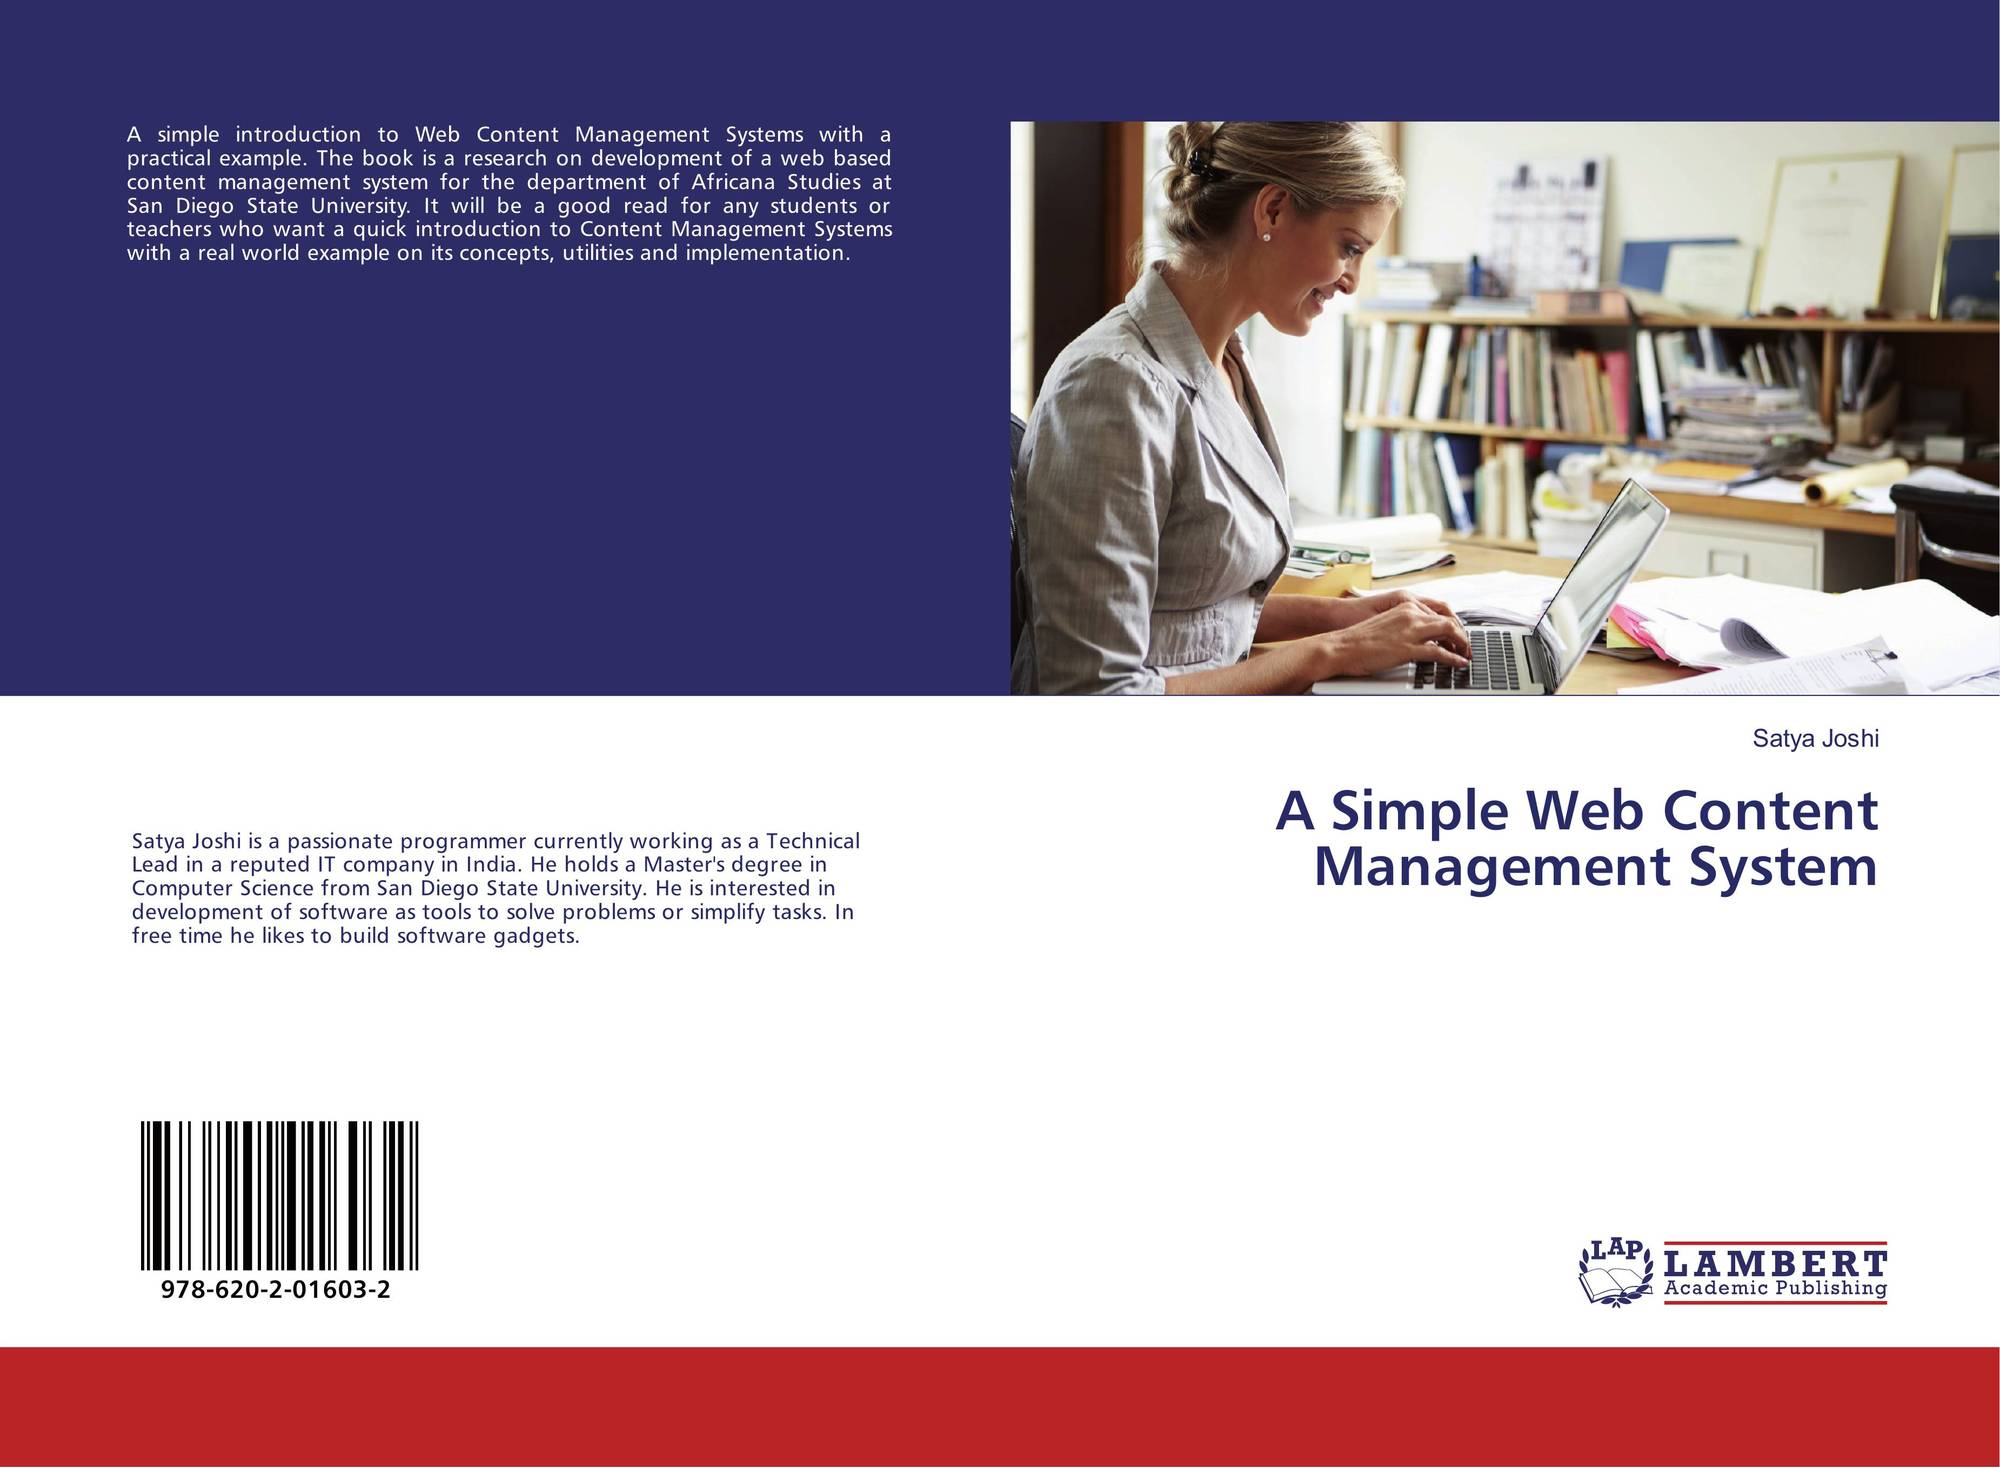 A Simple Web Content Management System, 978-620-2-01603-2